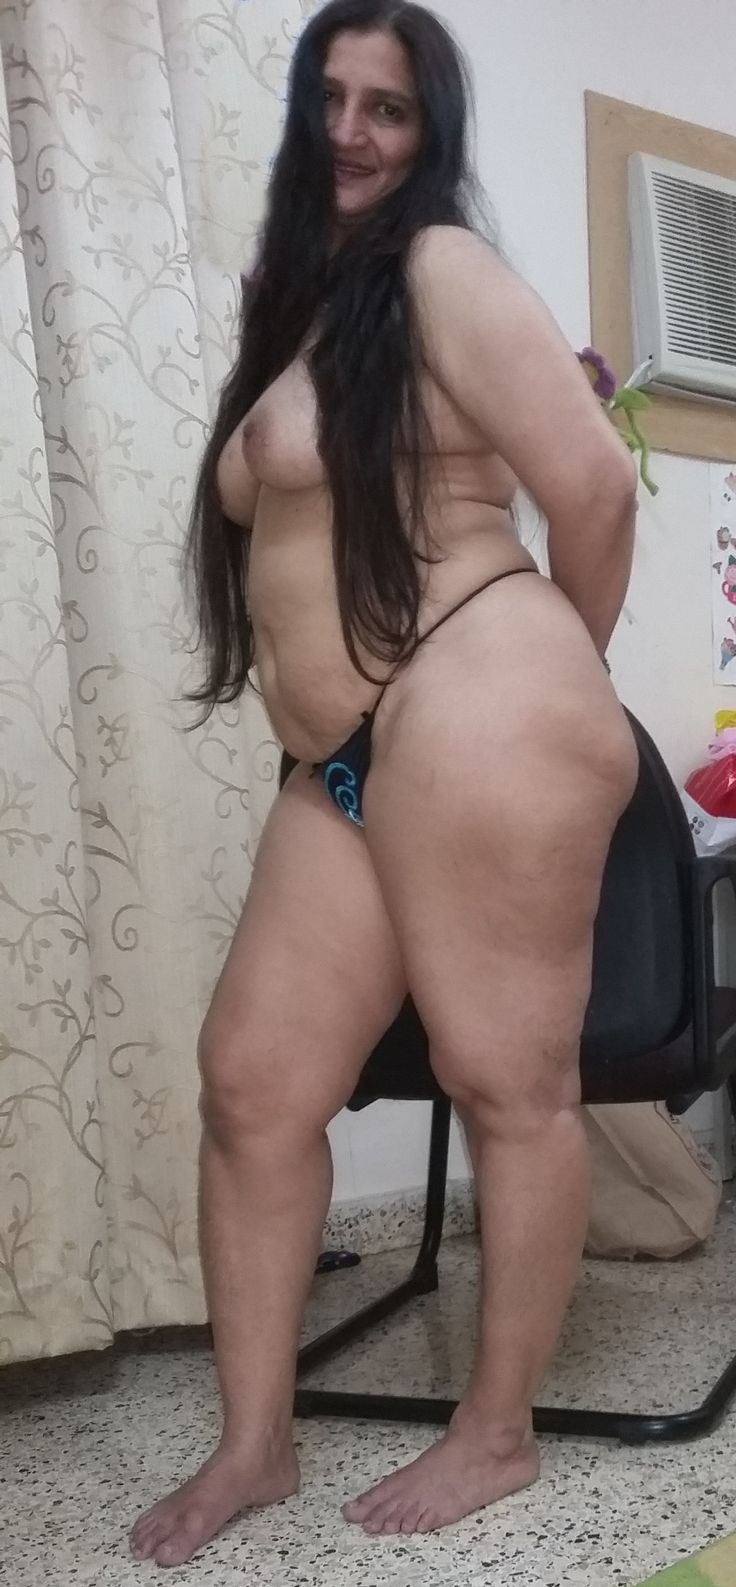 Serais routier bbw biggest aunty sex photo good